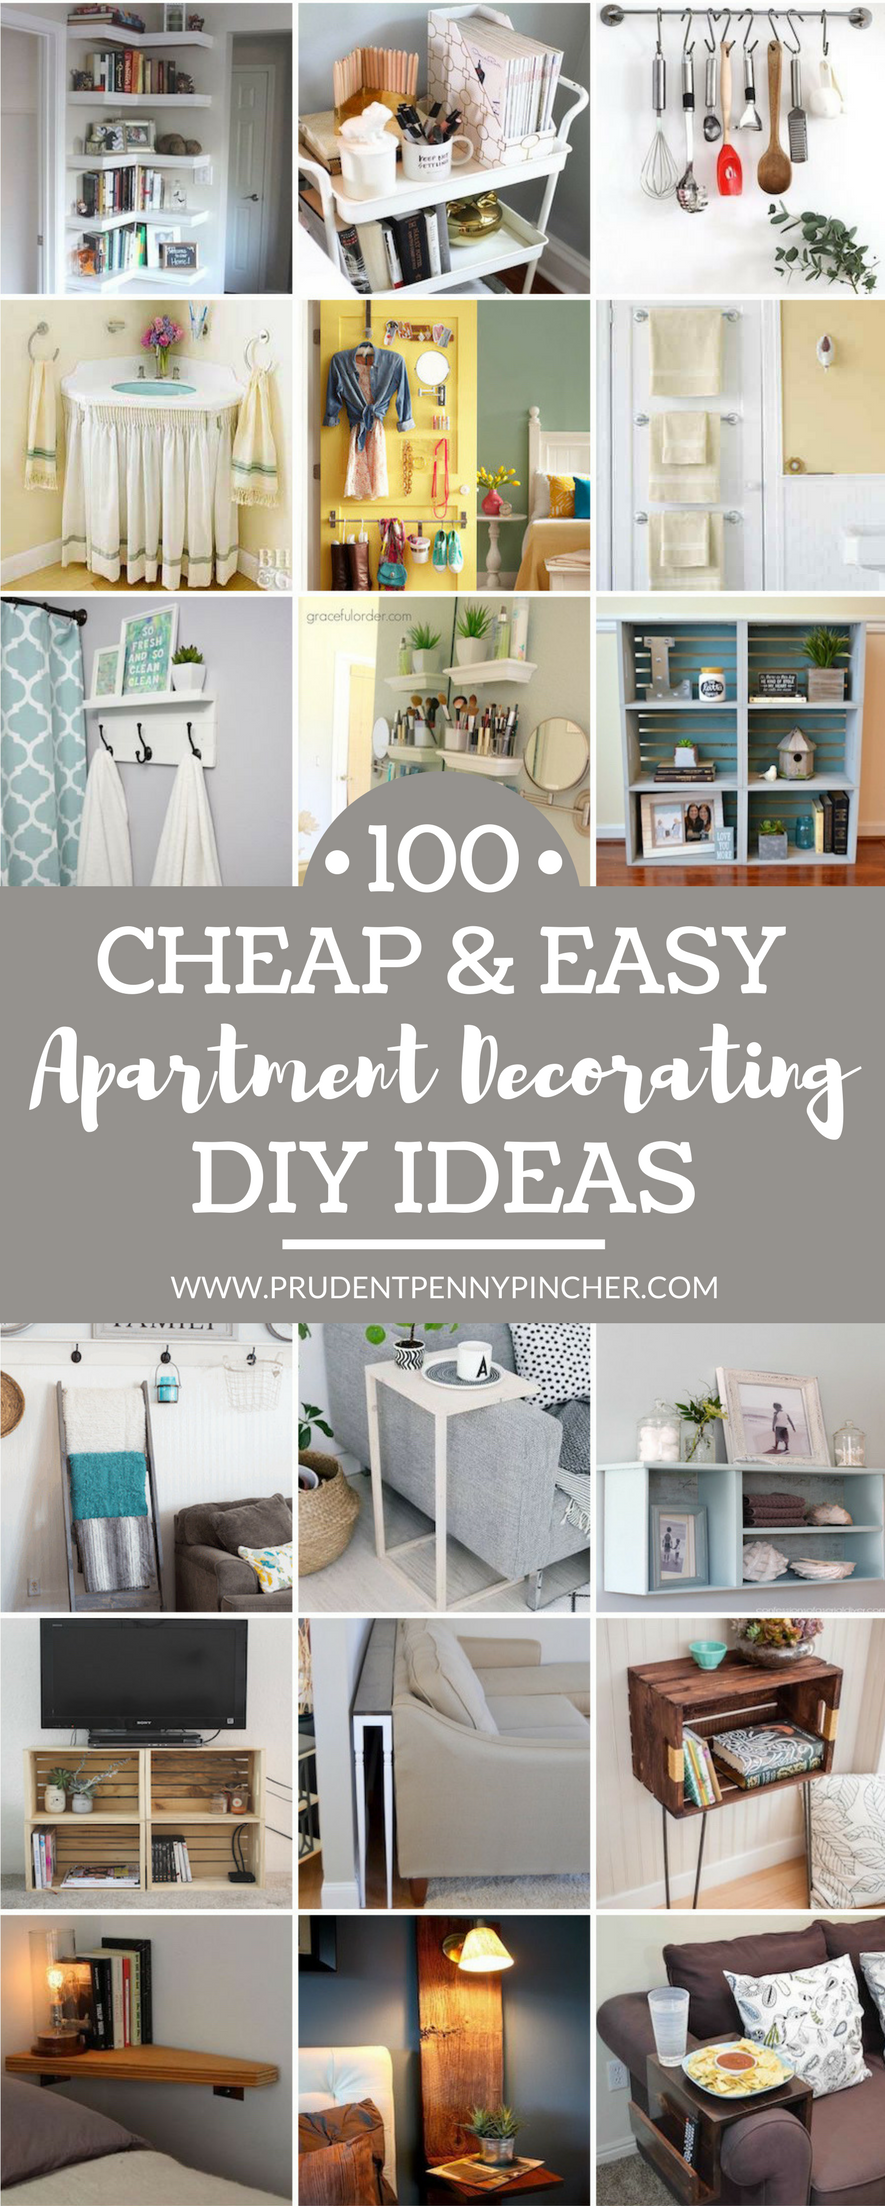 10 DIY Apartment Decorating Ideas  Diy apartment decor, Simple